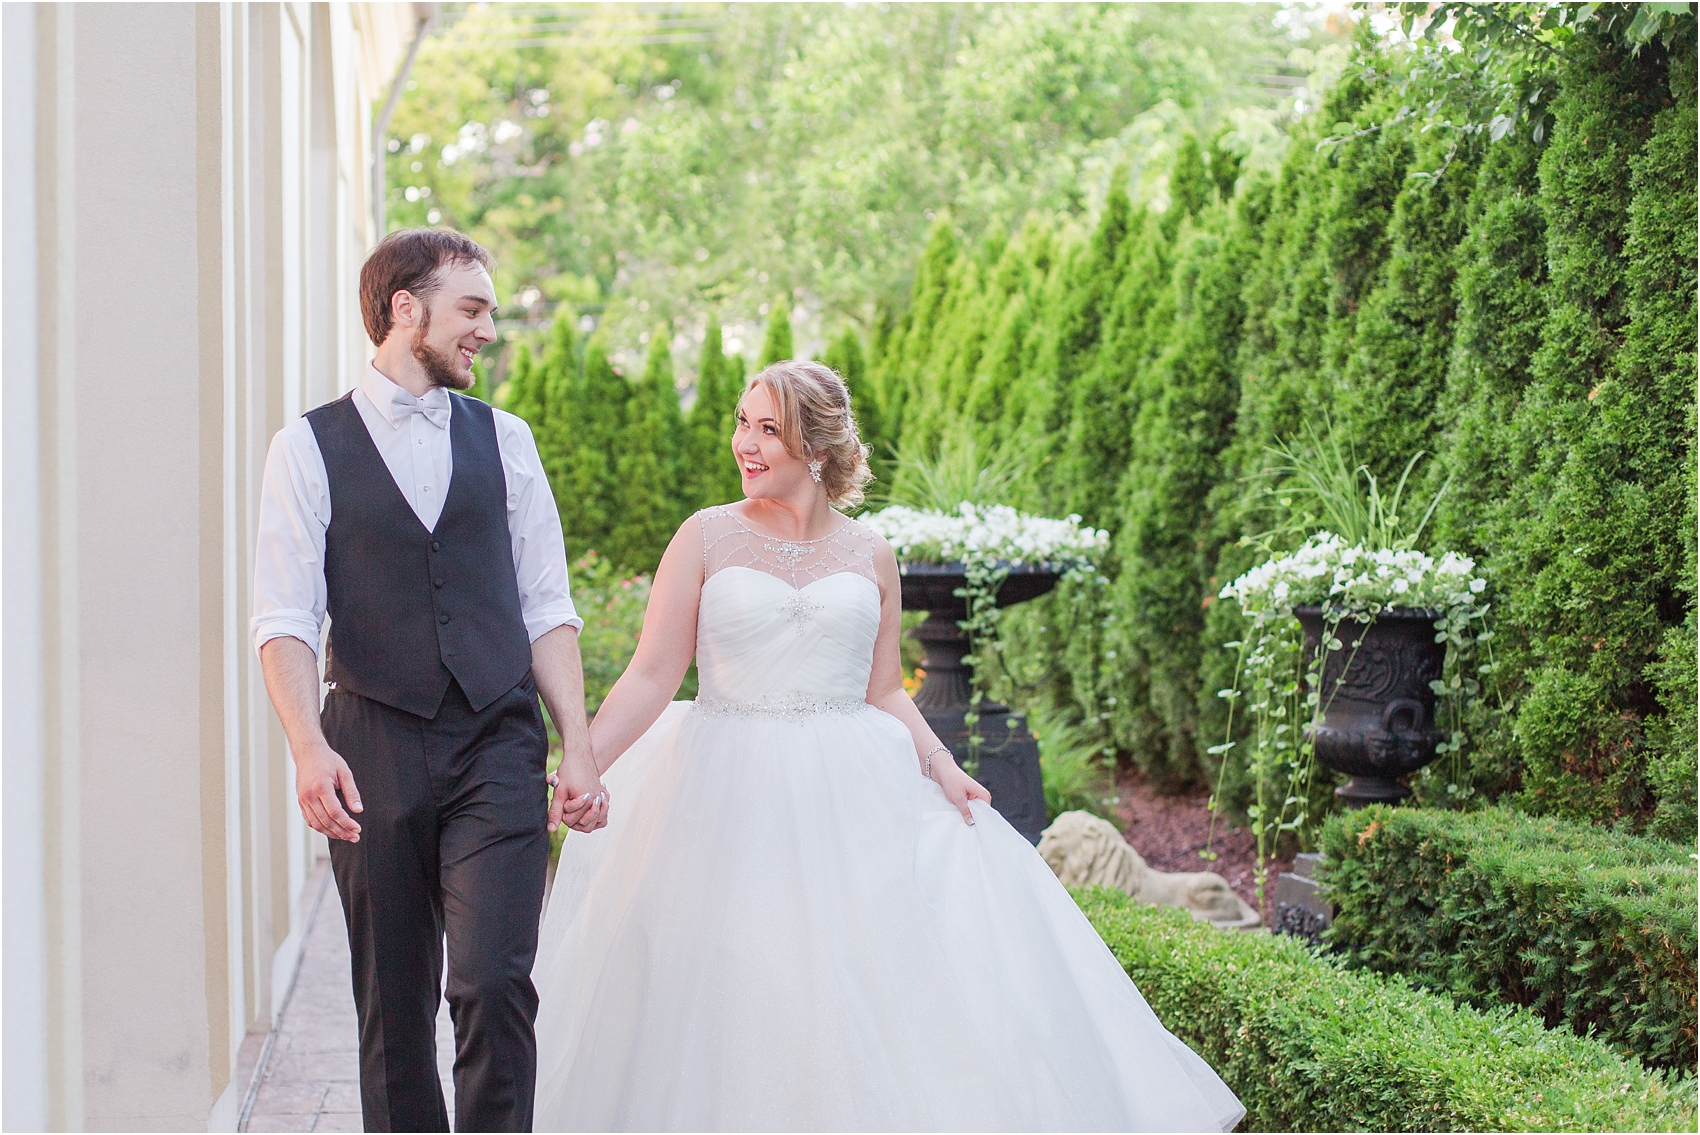 lord-of-the-rings-inspired-wedding-photos-at-crystal-gardens-in-howell-mi-by-courtney-carolyn-photography_0098.jpg